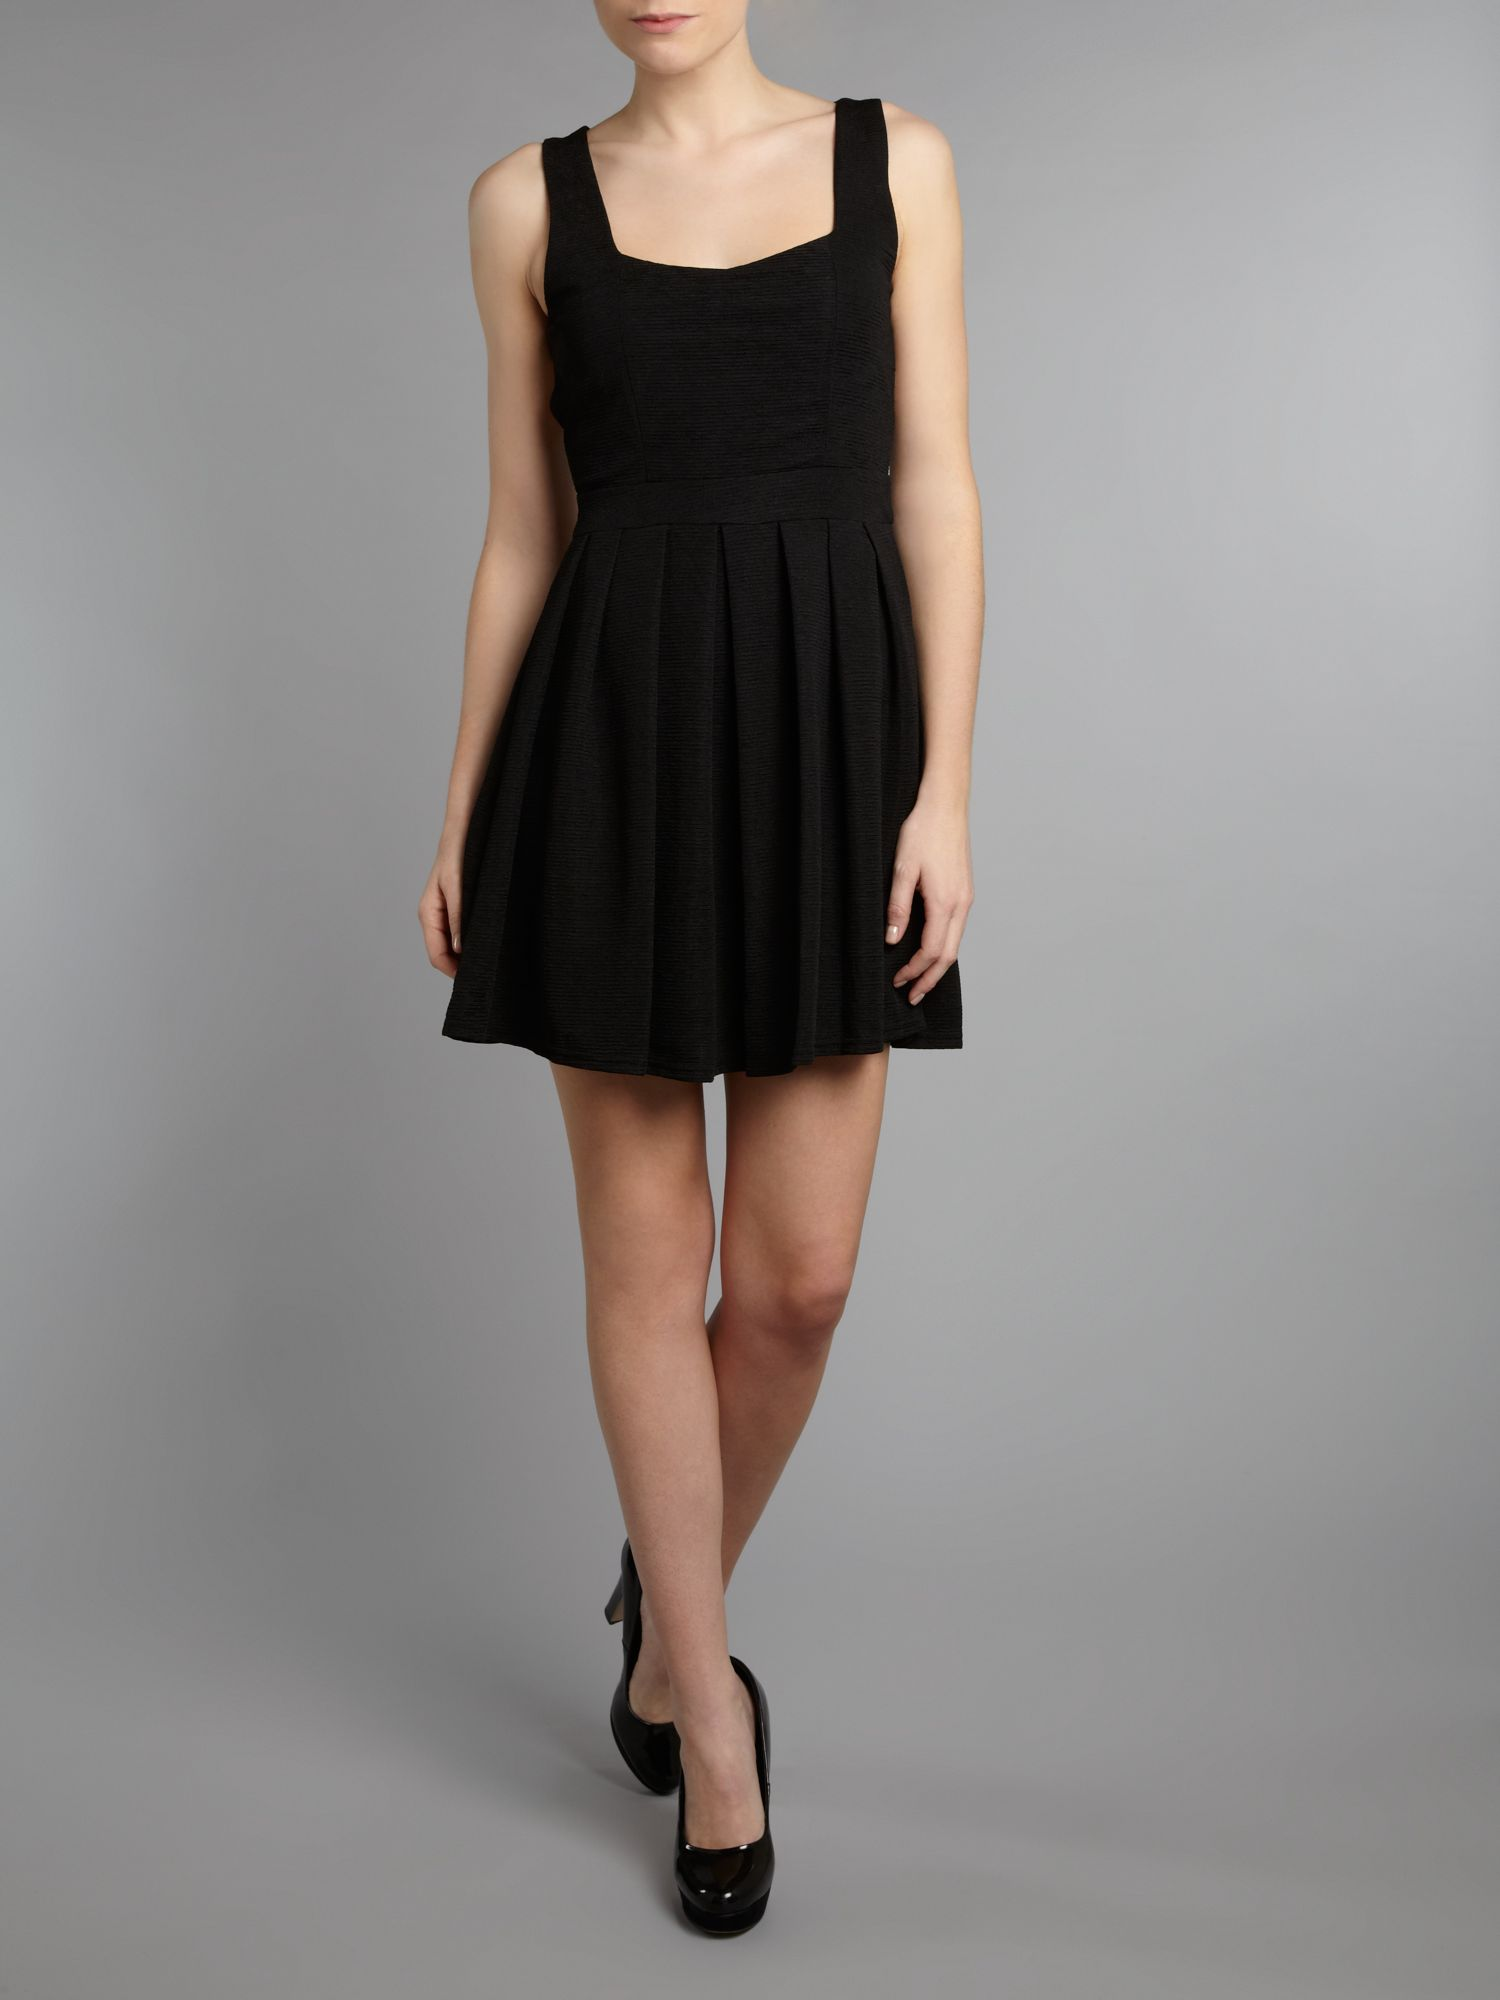 Pinafore top skater dress